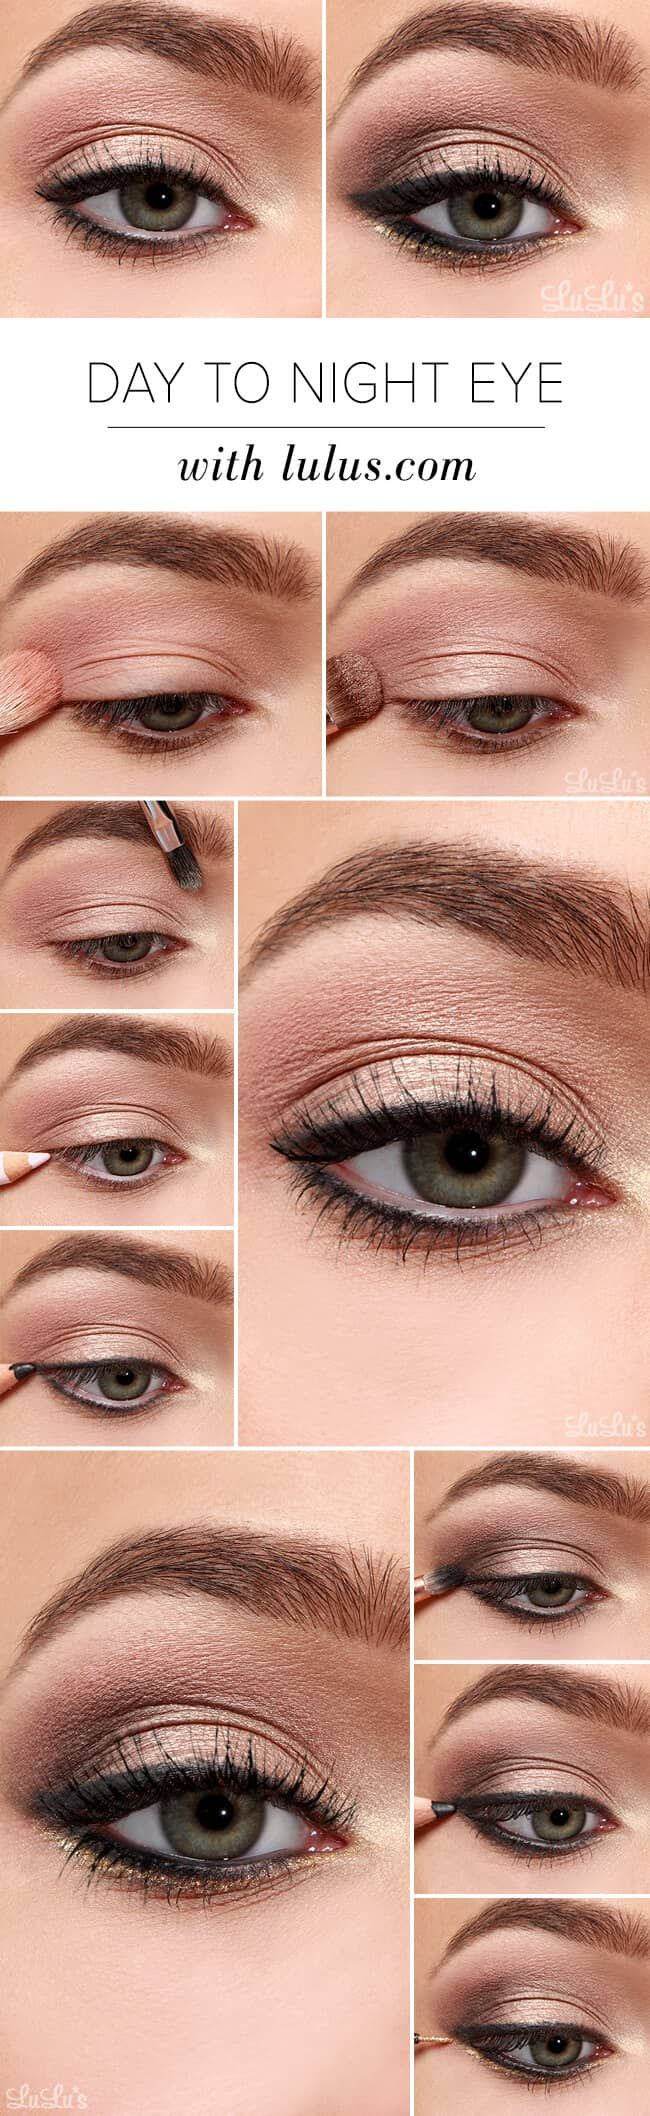 25 Super Make Up Tutorials